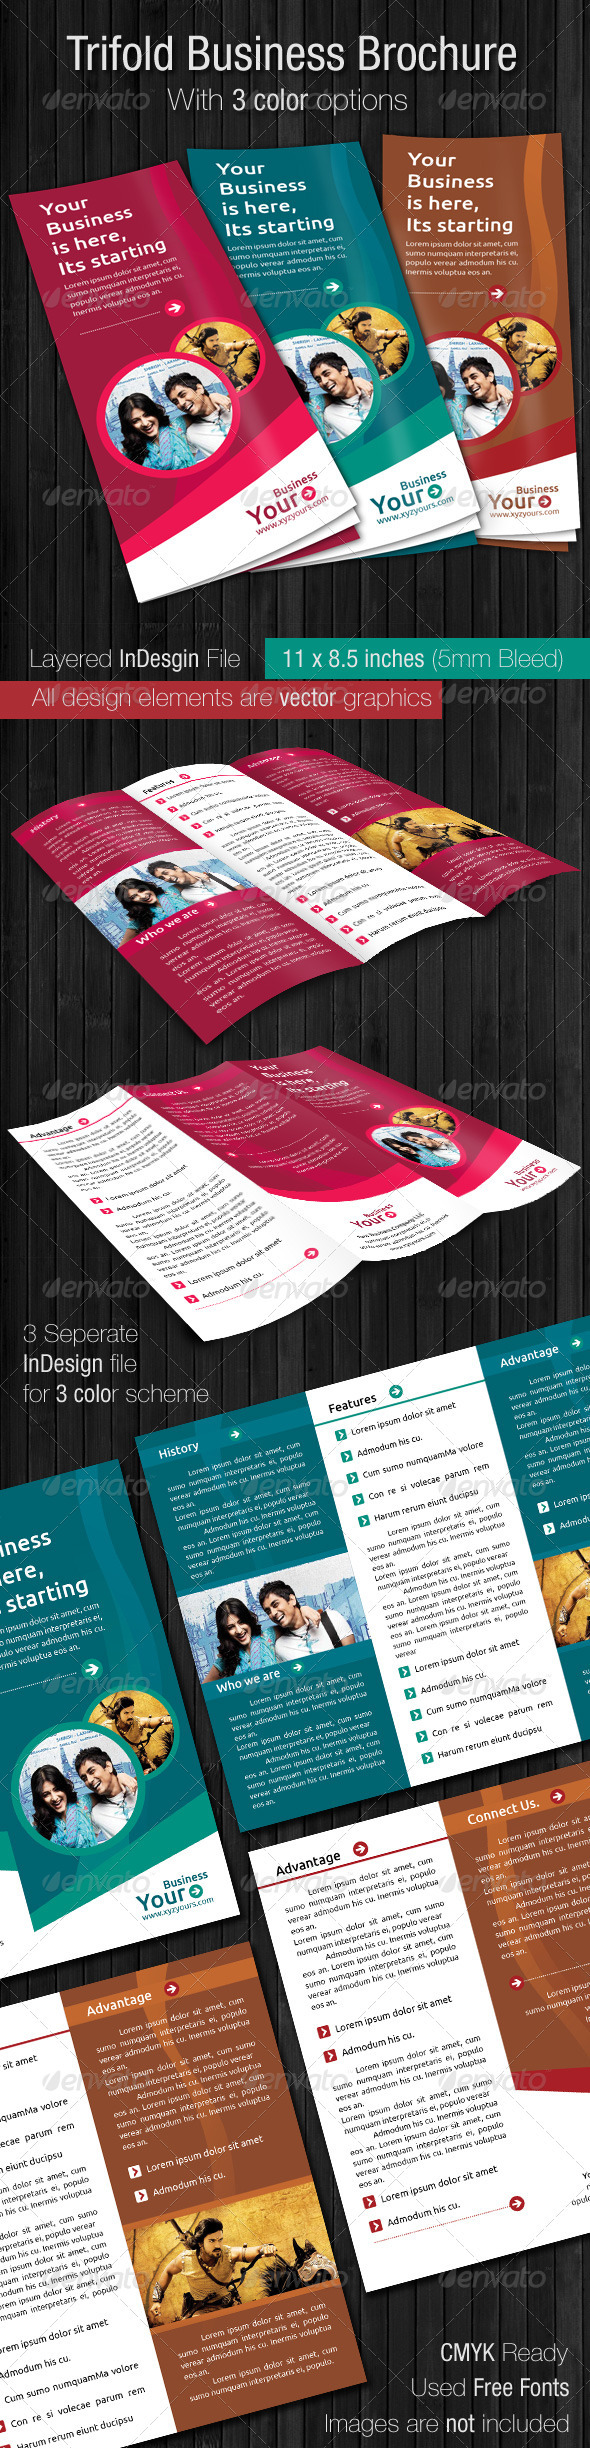 Trifold Business Brochure - Informational Brochures